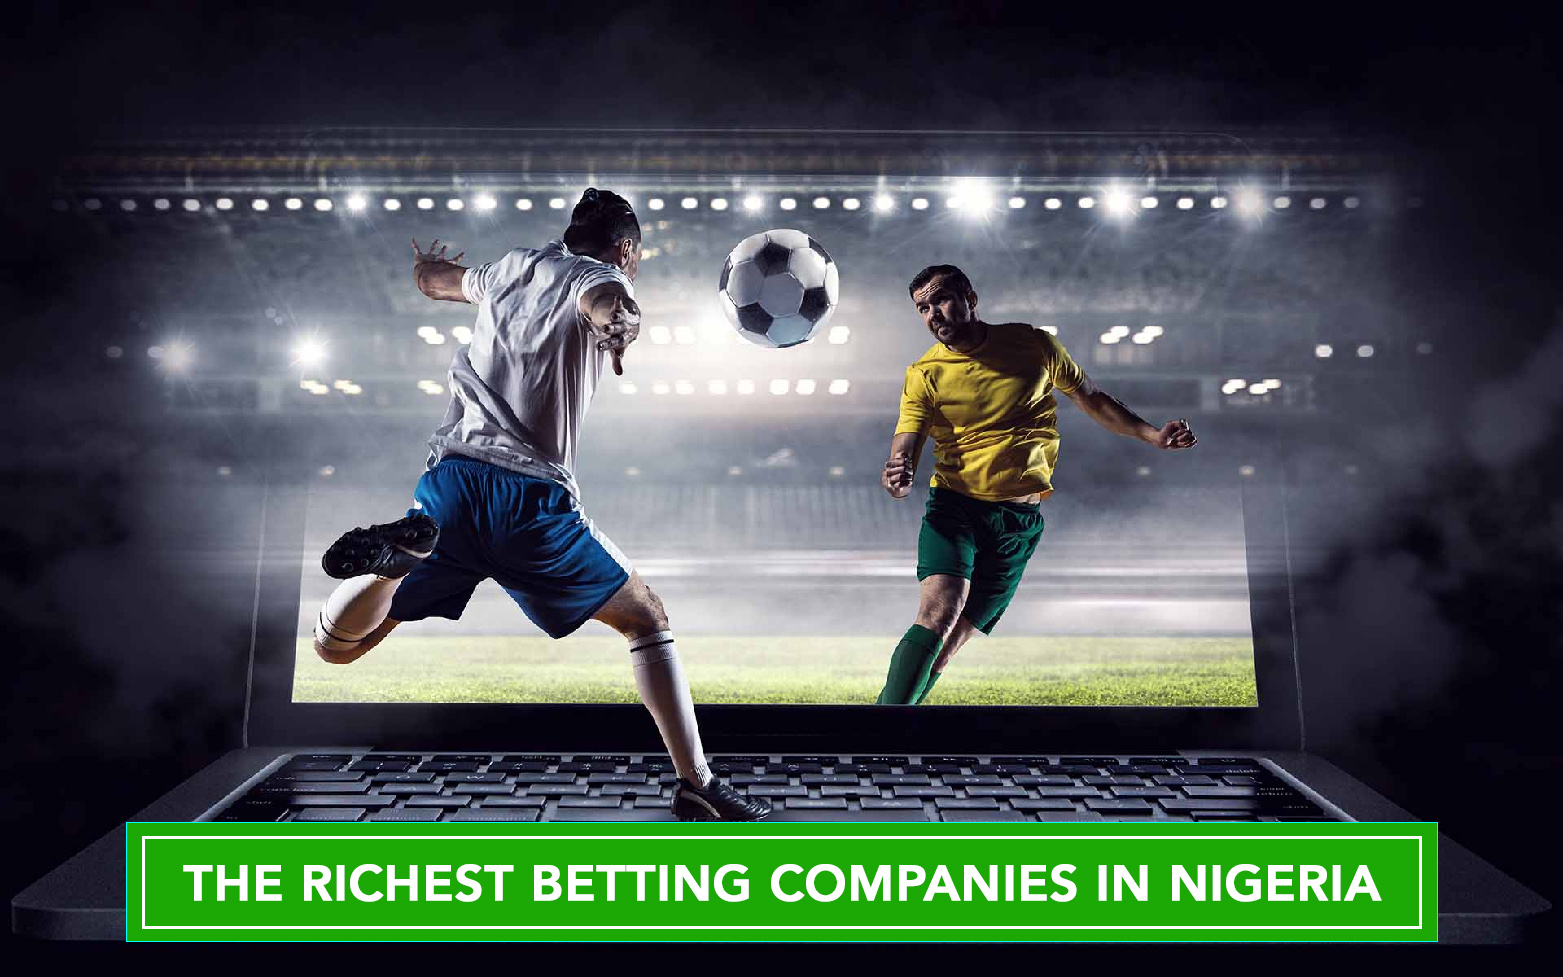 richest betting companies in Nigeria